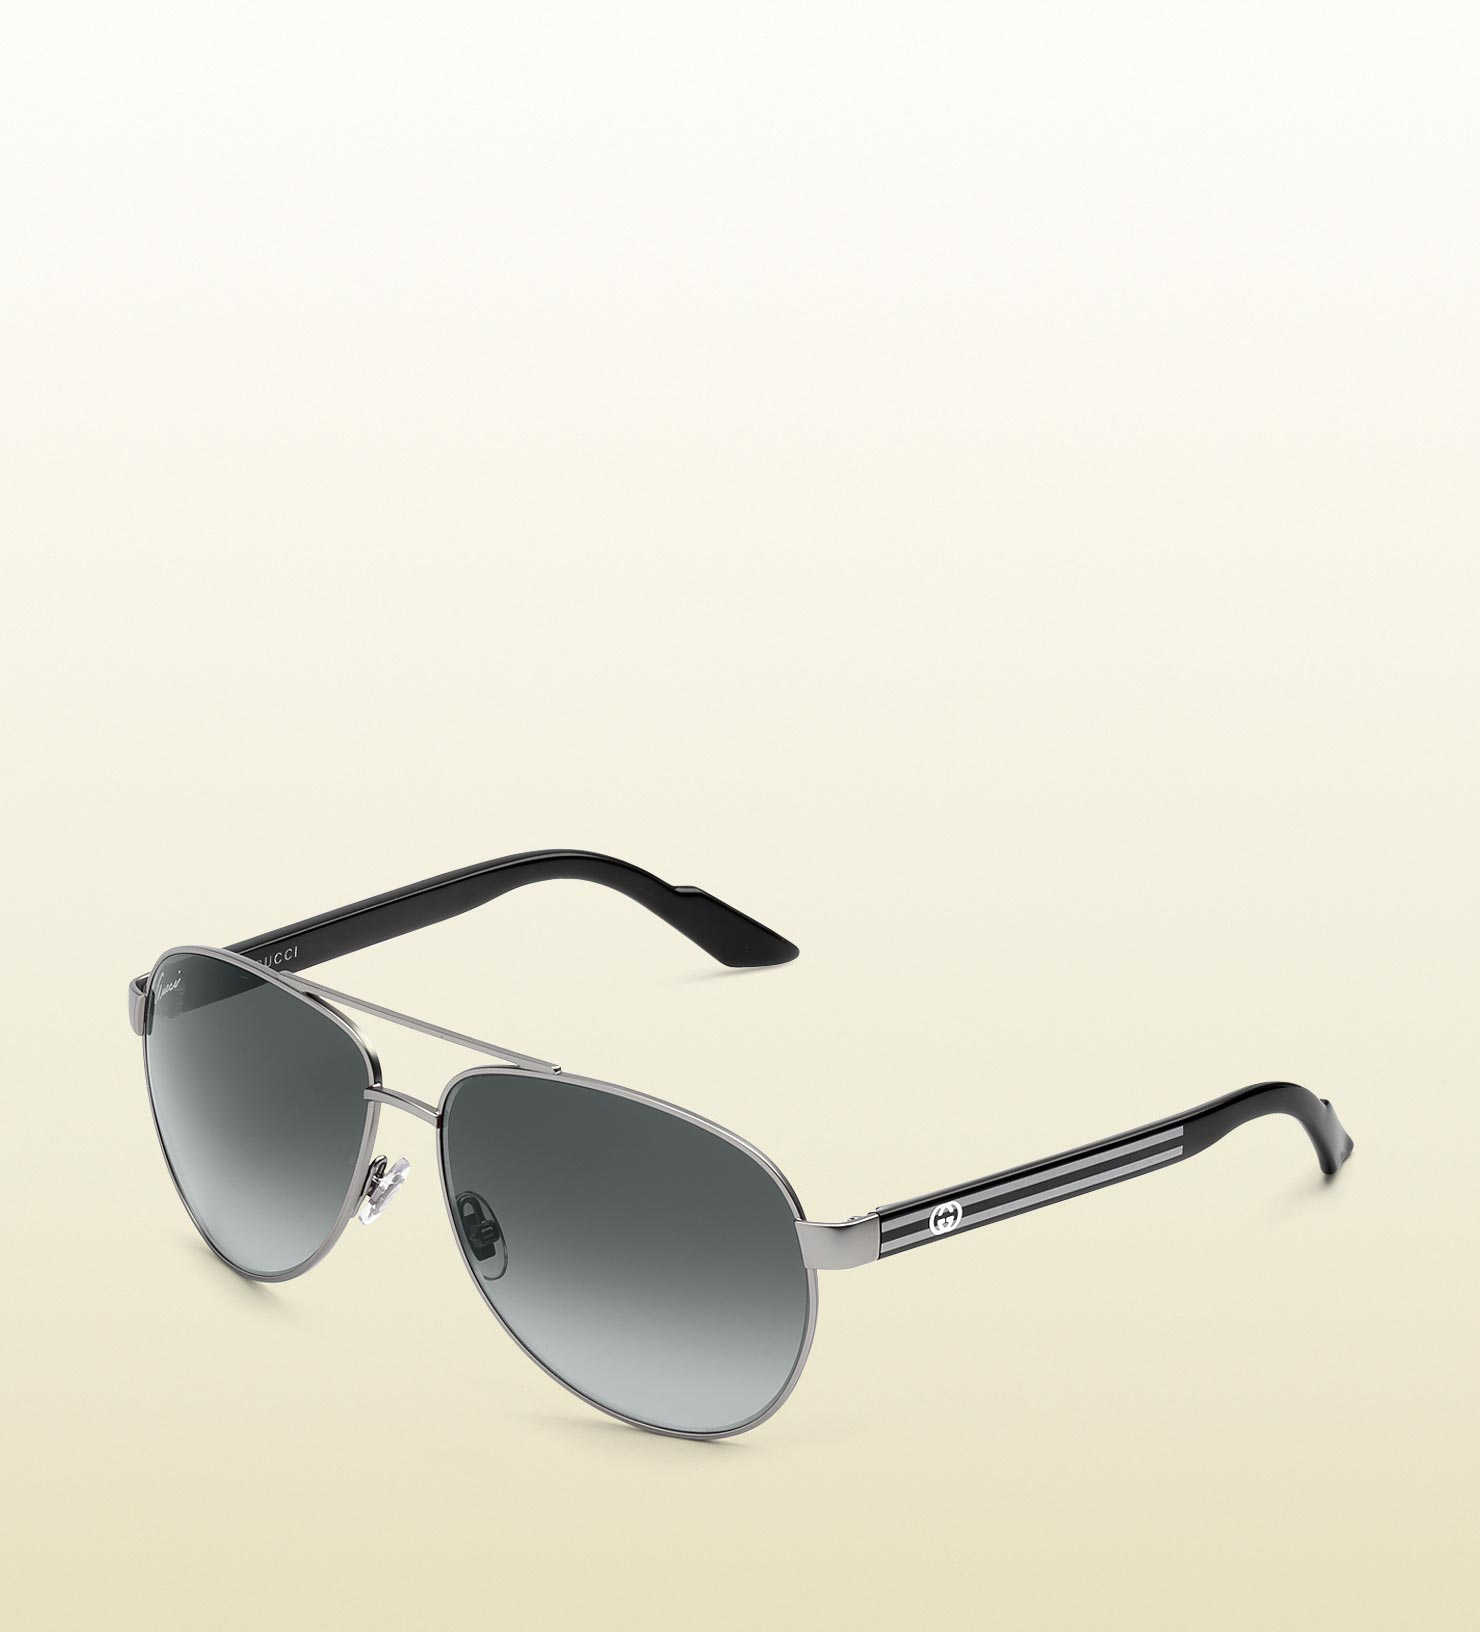 ad9a067fd00 Lyst - Gucci Small Aviator Sunglasses with GG Detail and Web On ...